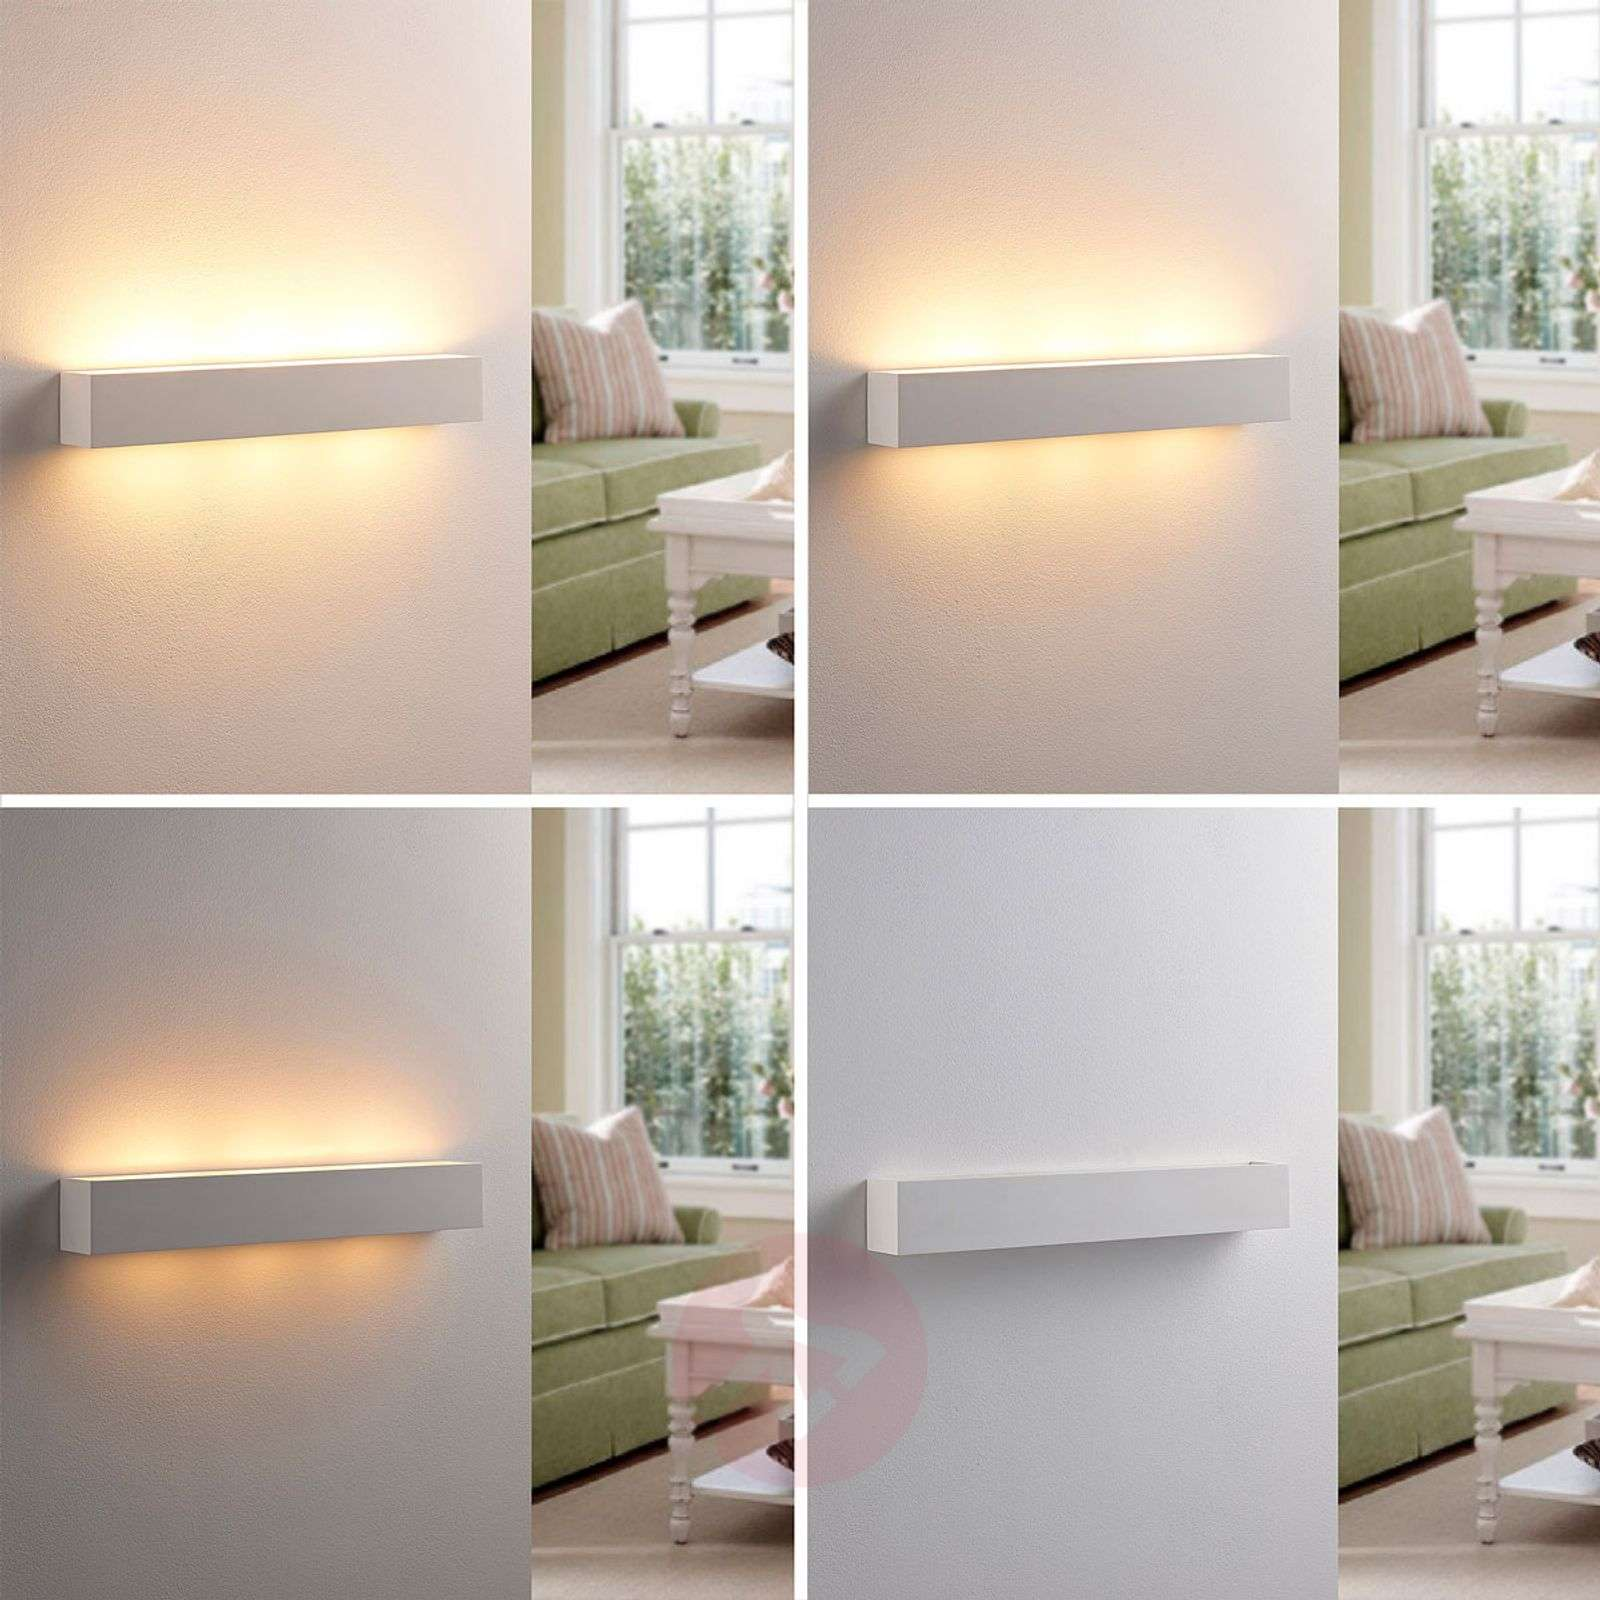 Tjada long LED wall lamp made from plaster-9621338-02